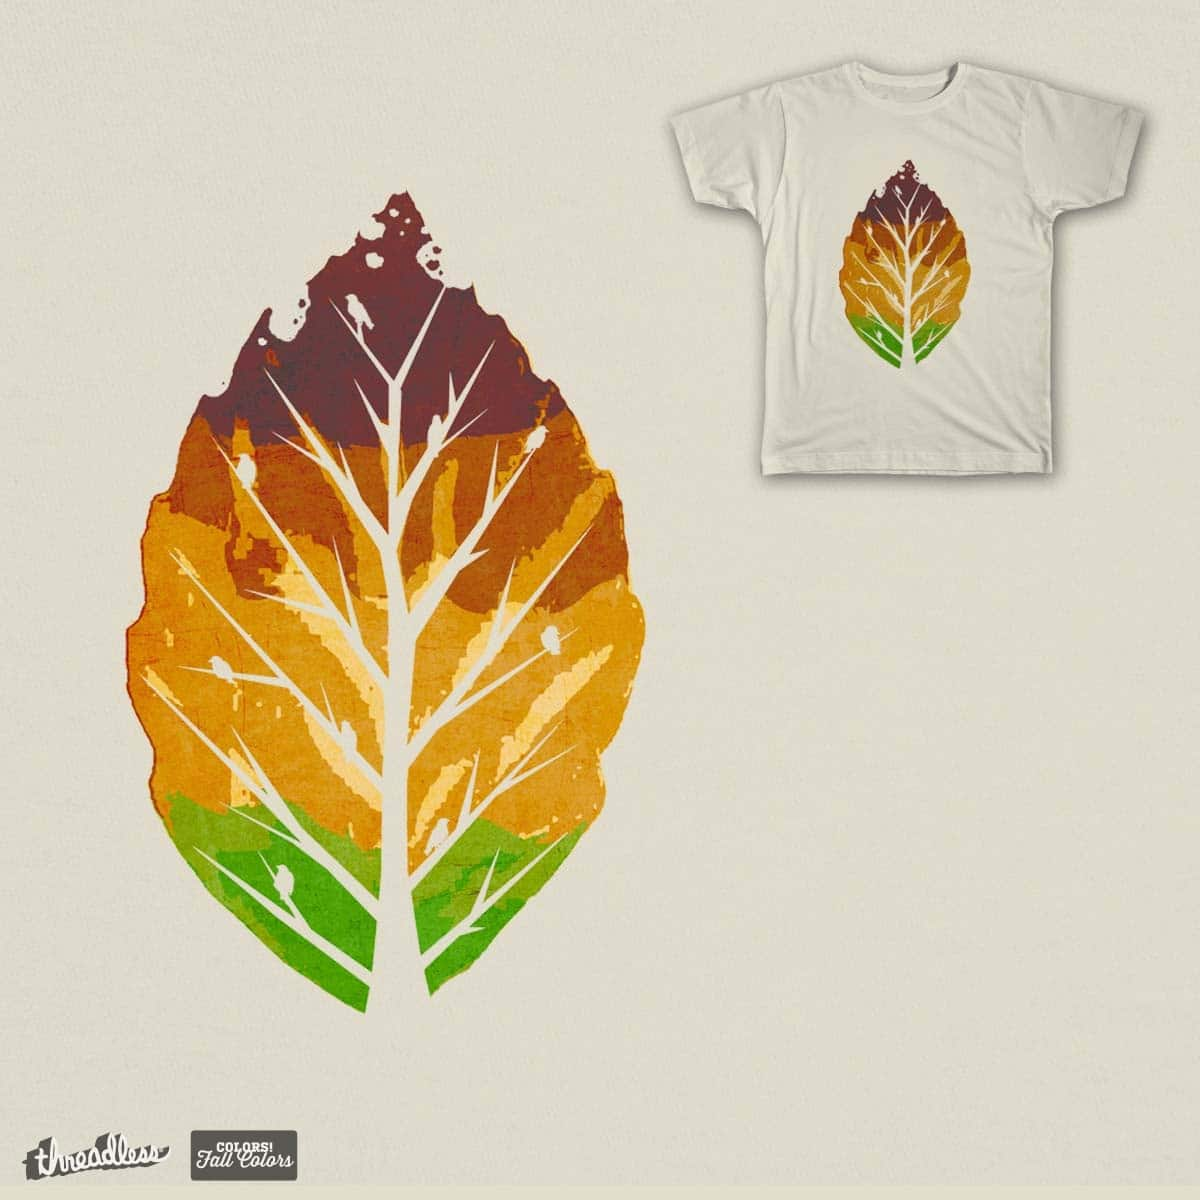 Leaf Cycle by Leo Canham on Threadless